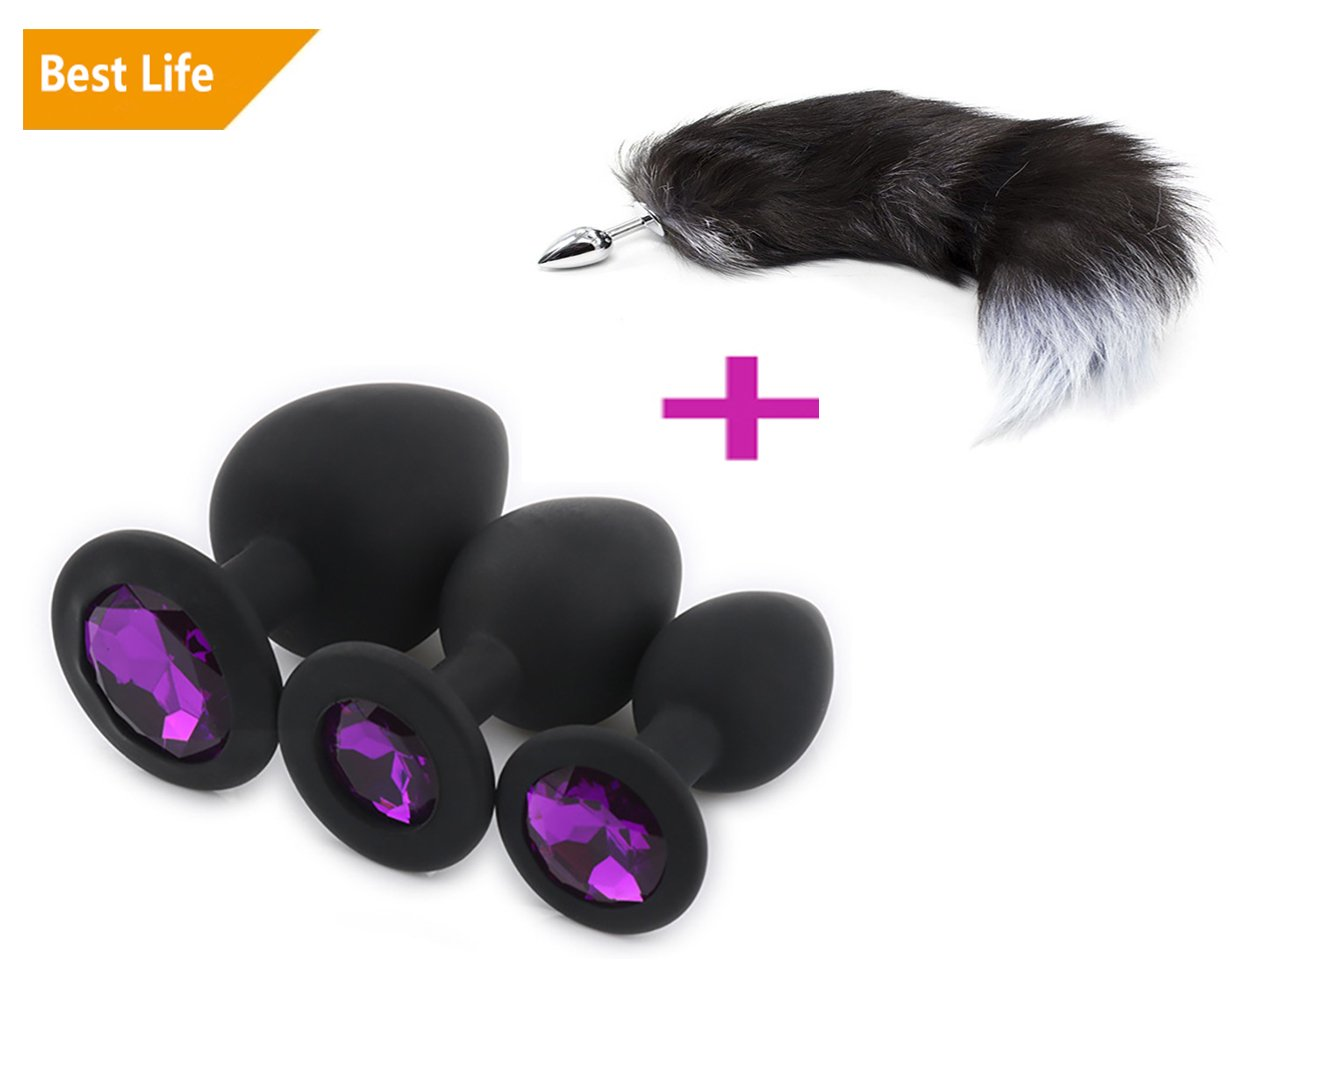 3 Pcs 3 Size Plugs Set with Fox Tail Trainer Toys for You and Your Lover (A) Baumor